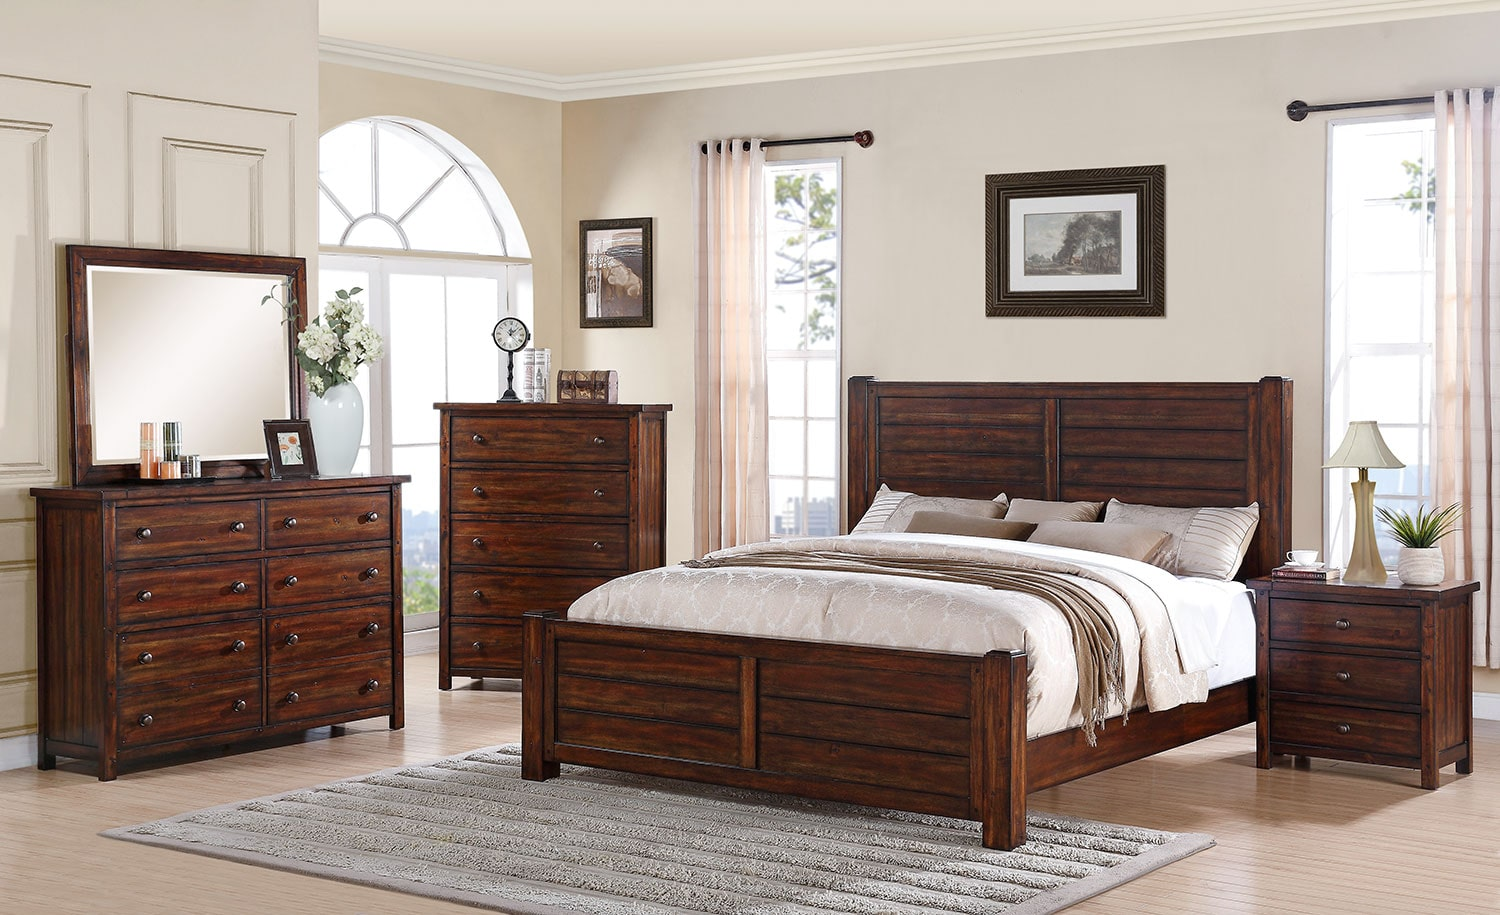 Paxton 4-Piece Queen Bedroom Set - Chestnut